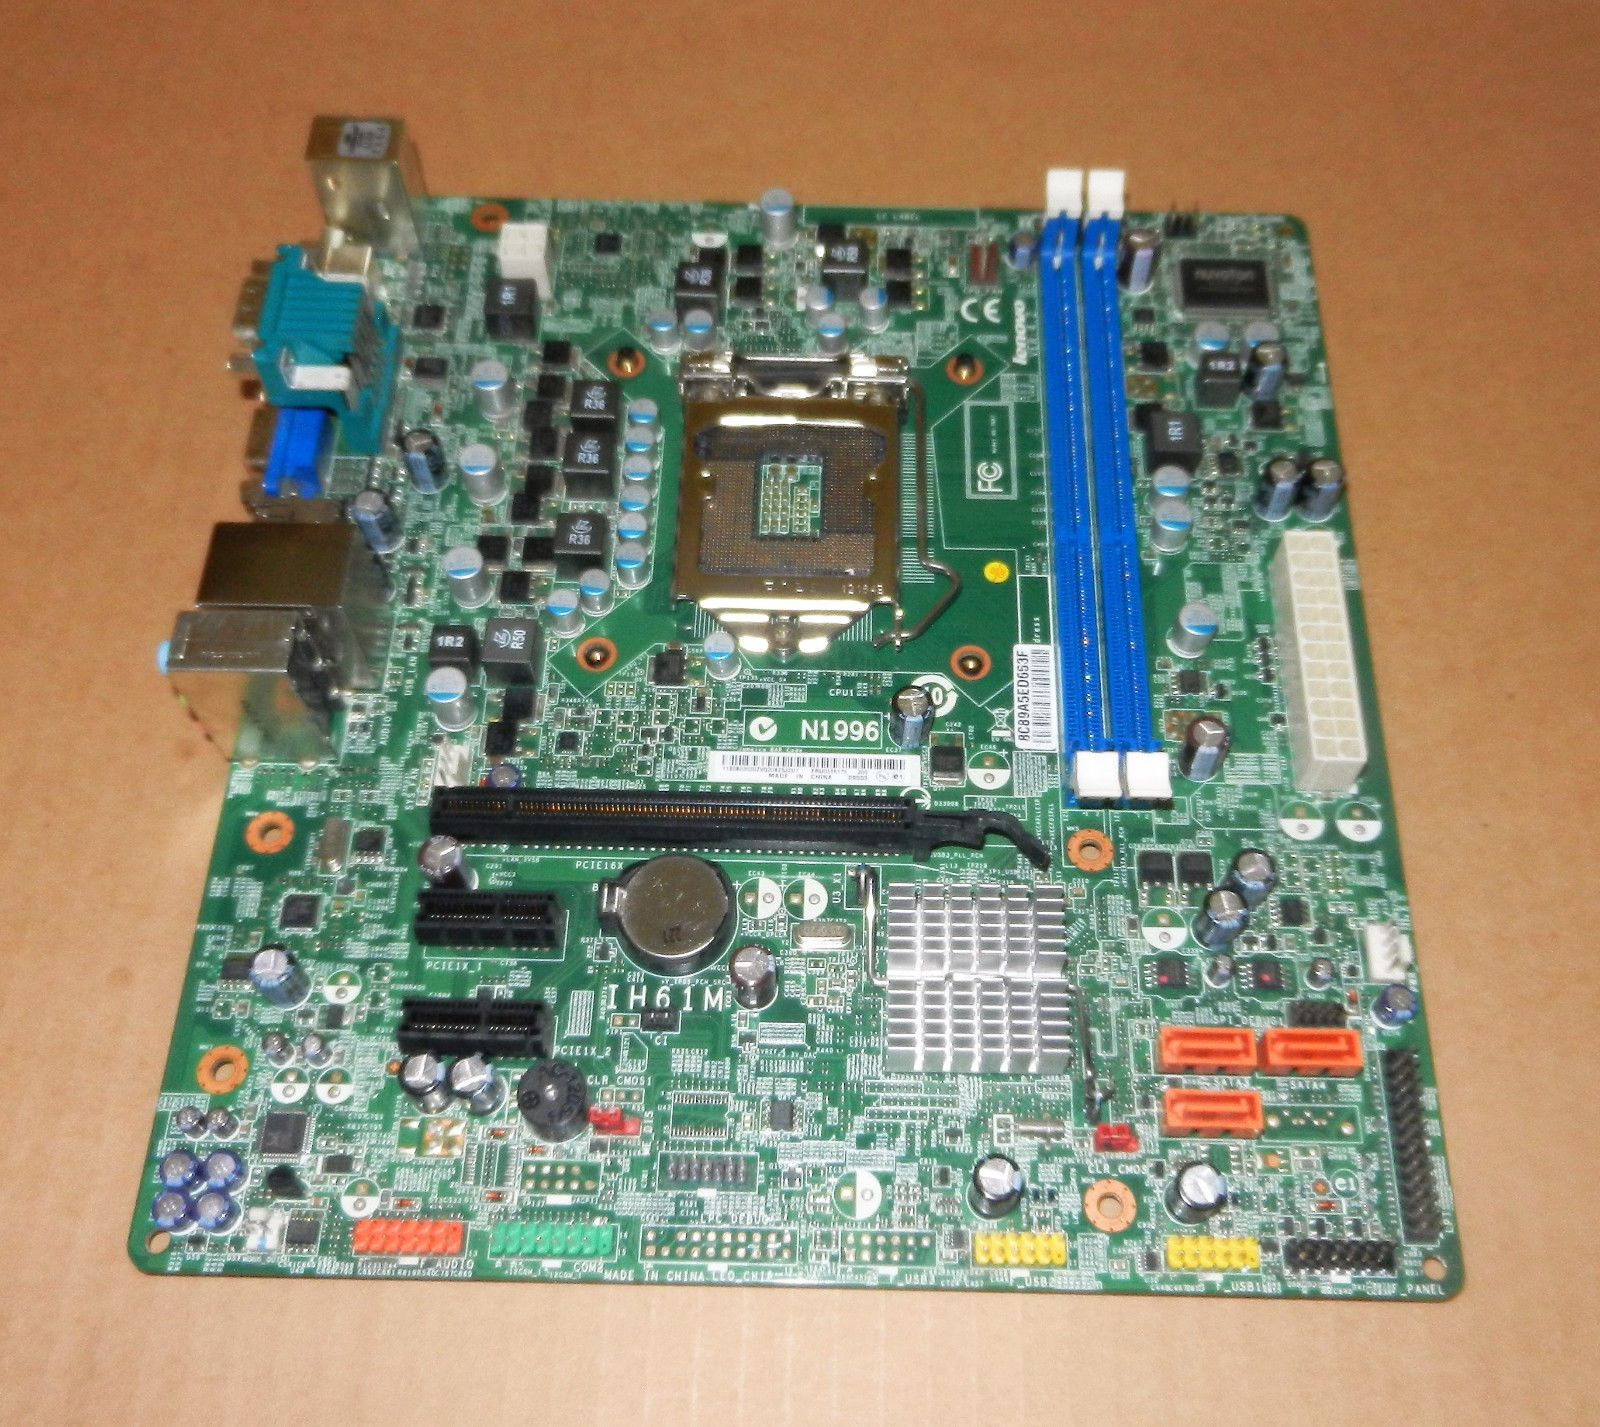 IBM N1996 MOTHERBOARD AUDIO WINDOWS 7 64BIT DRIVER